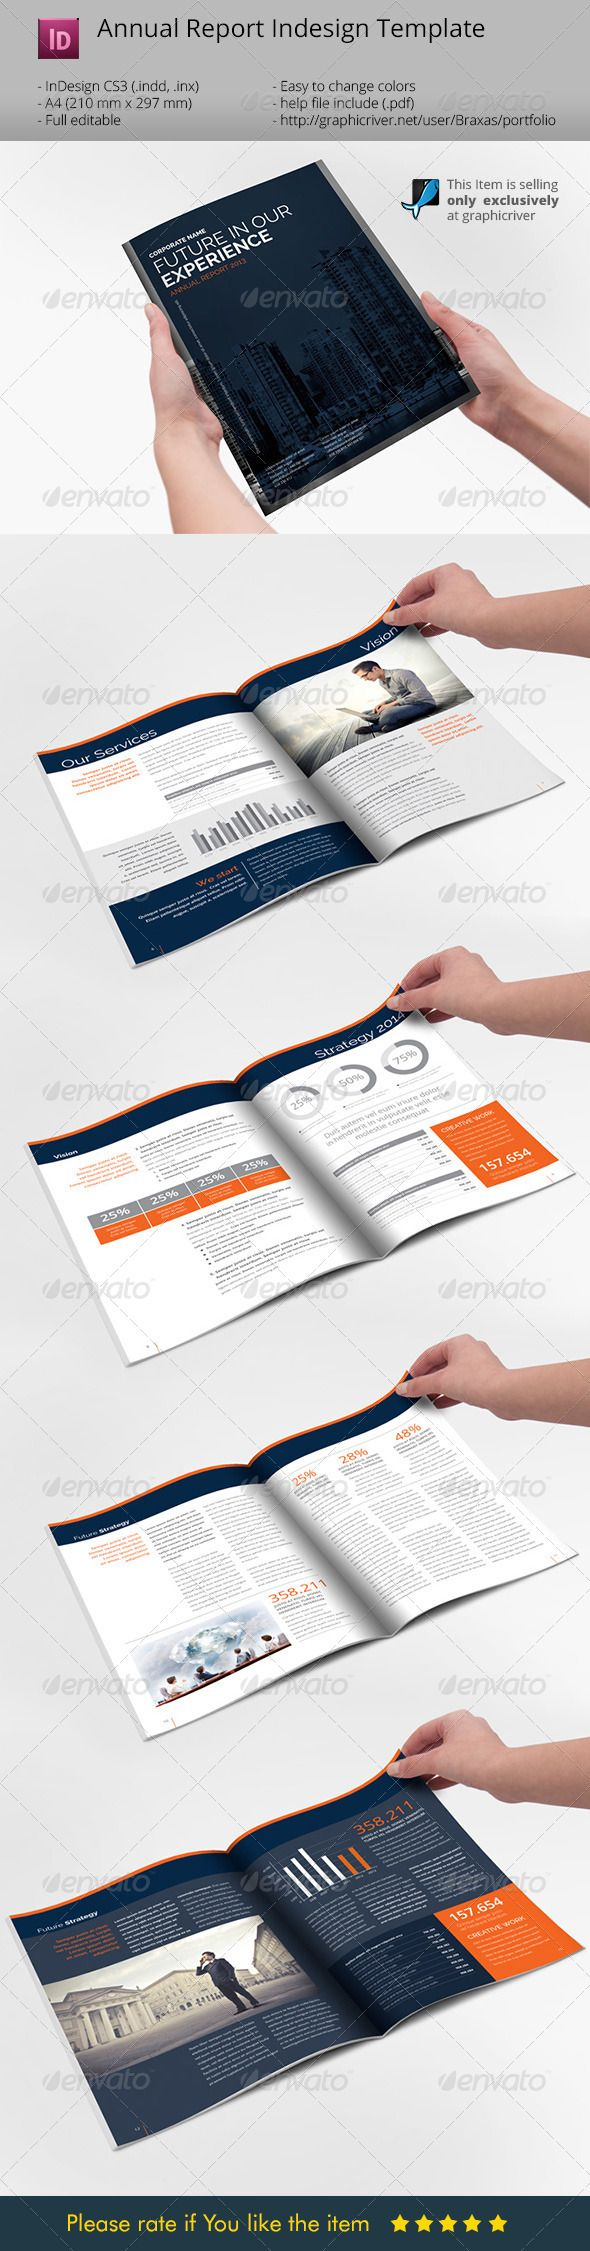 Annual Report Indesign Template Informational Brochures